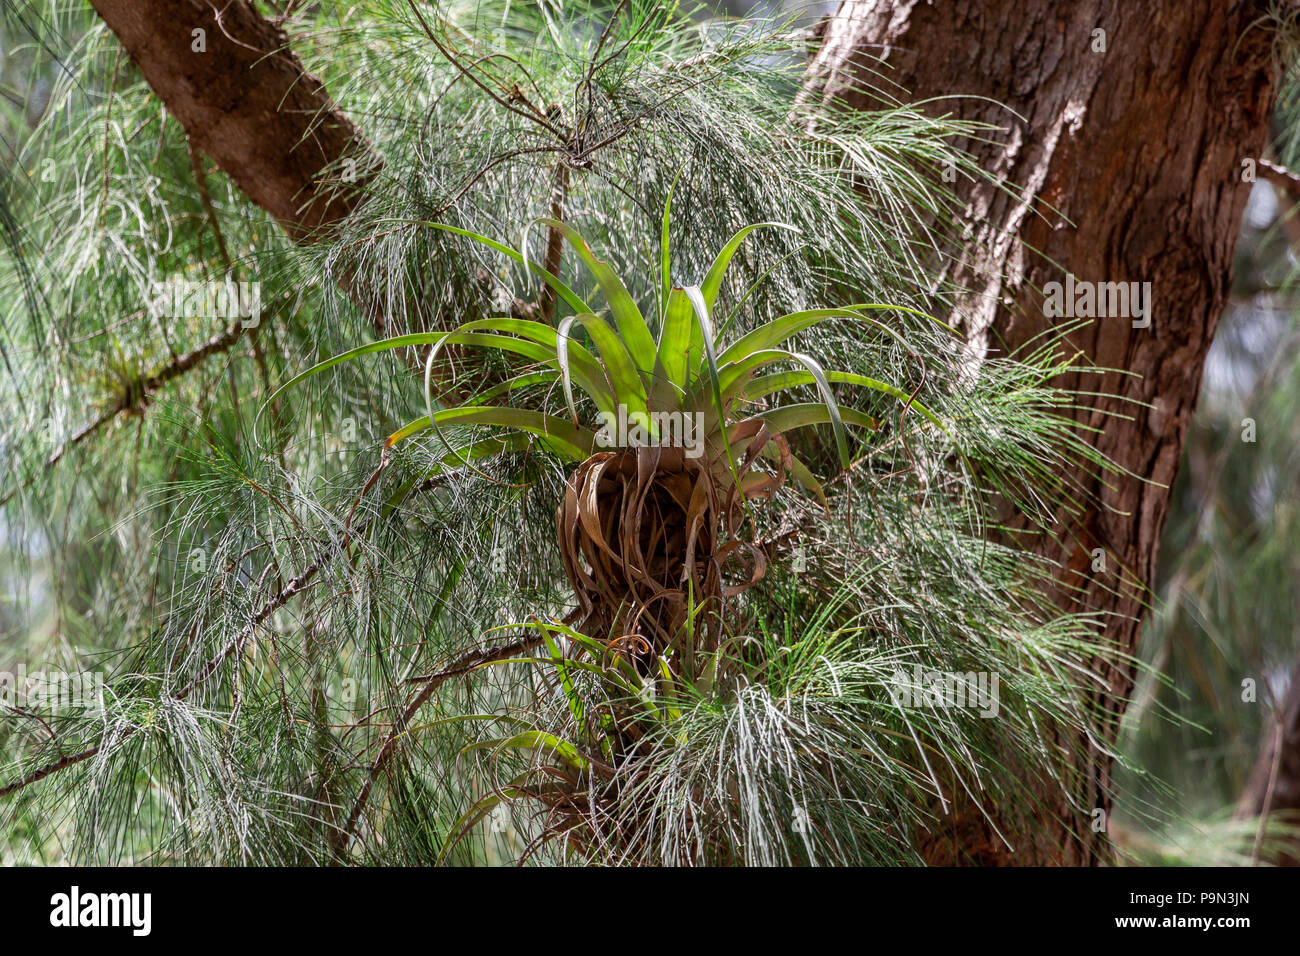 Giant airplant (Tillandsia utriculata) bromeliad growing on Australian pine tree (Casuarina equisetifolia). Endangered in Florida due to weevils - Stock Image